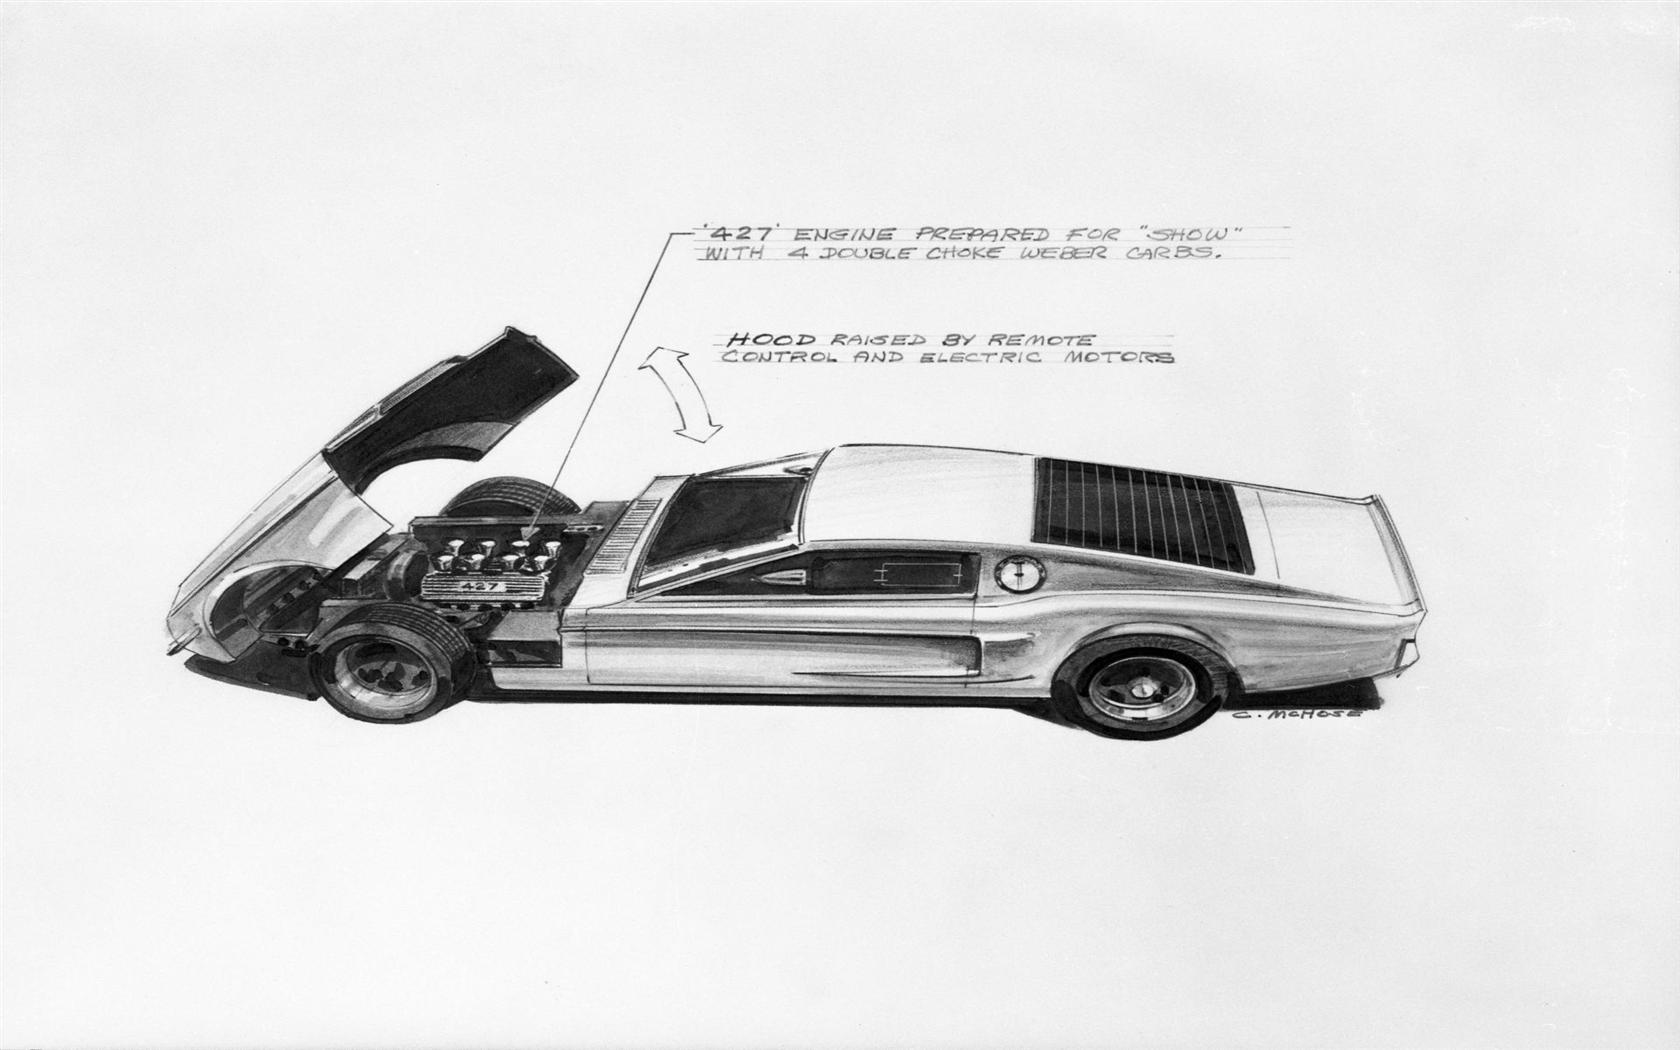 Ford Mustang Mach 1 Concept Images Photo 66 Ford Mustang Mach 1 Concept Image 02